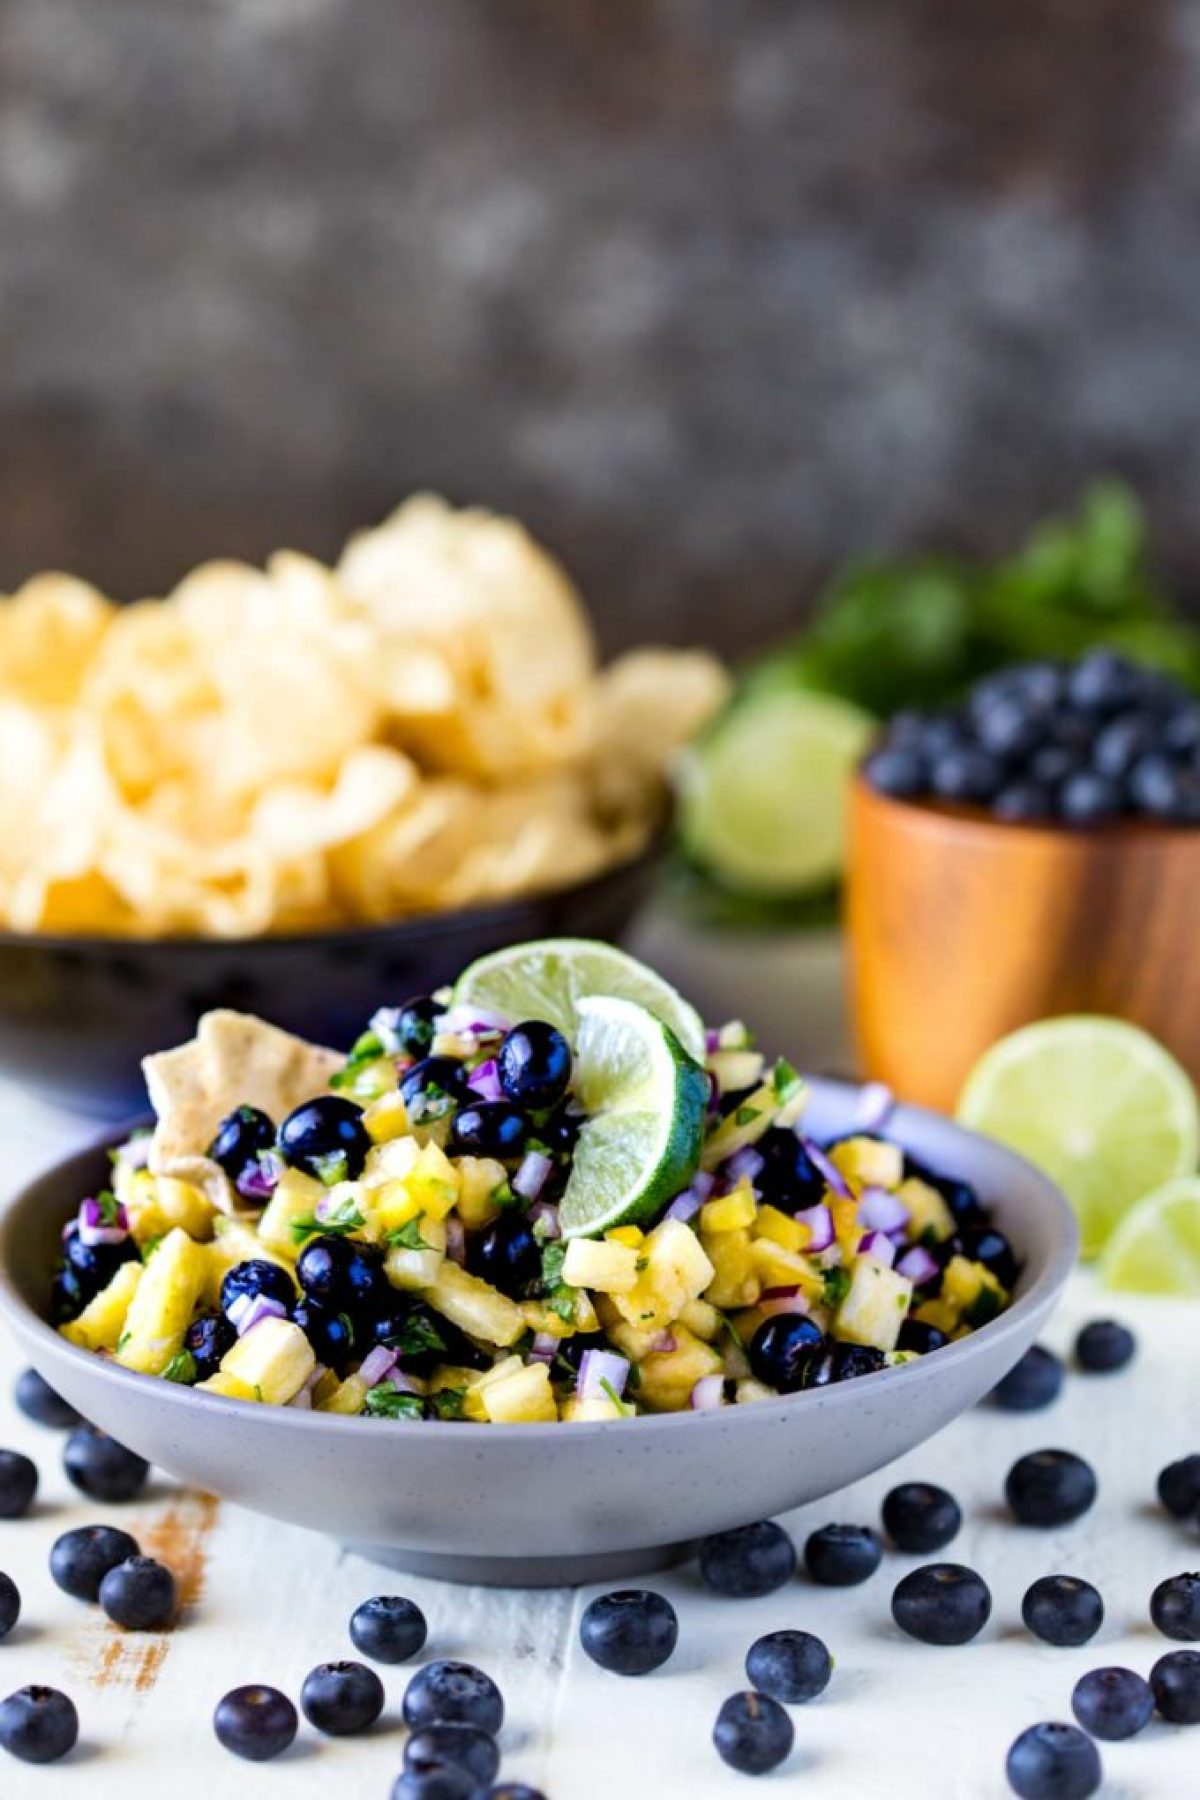 Blueberry Fruit Salsa, a great blueberry and pineapple salsa!